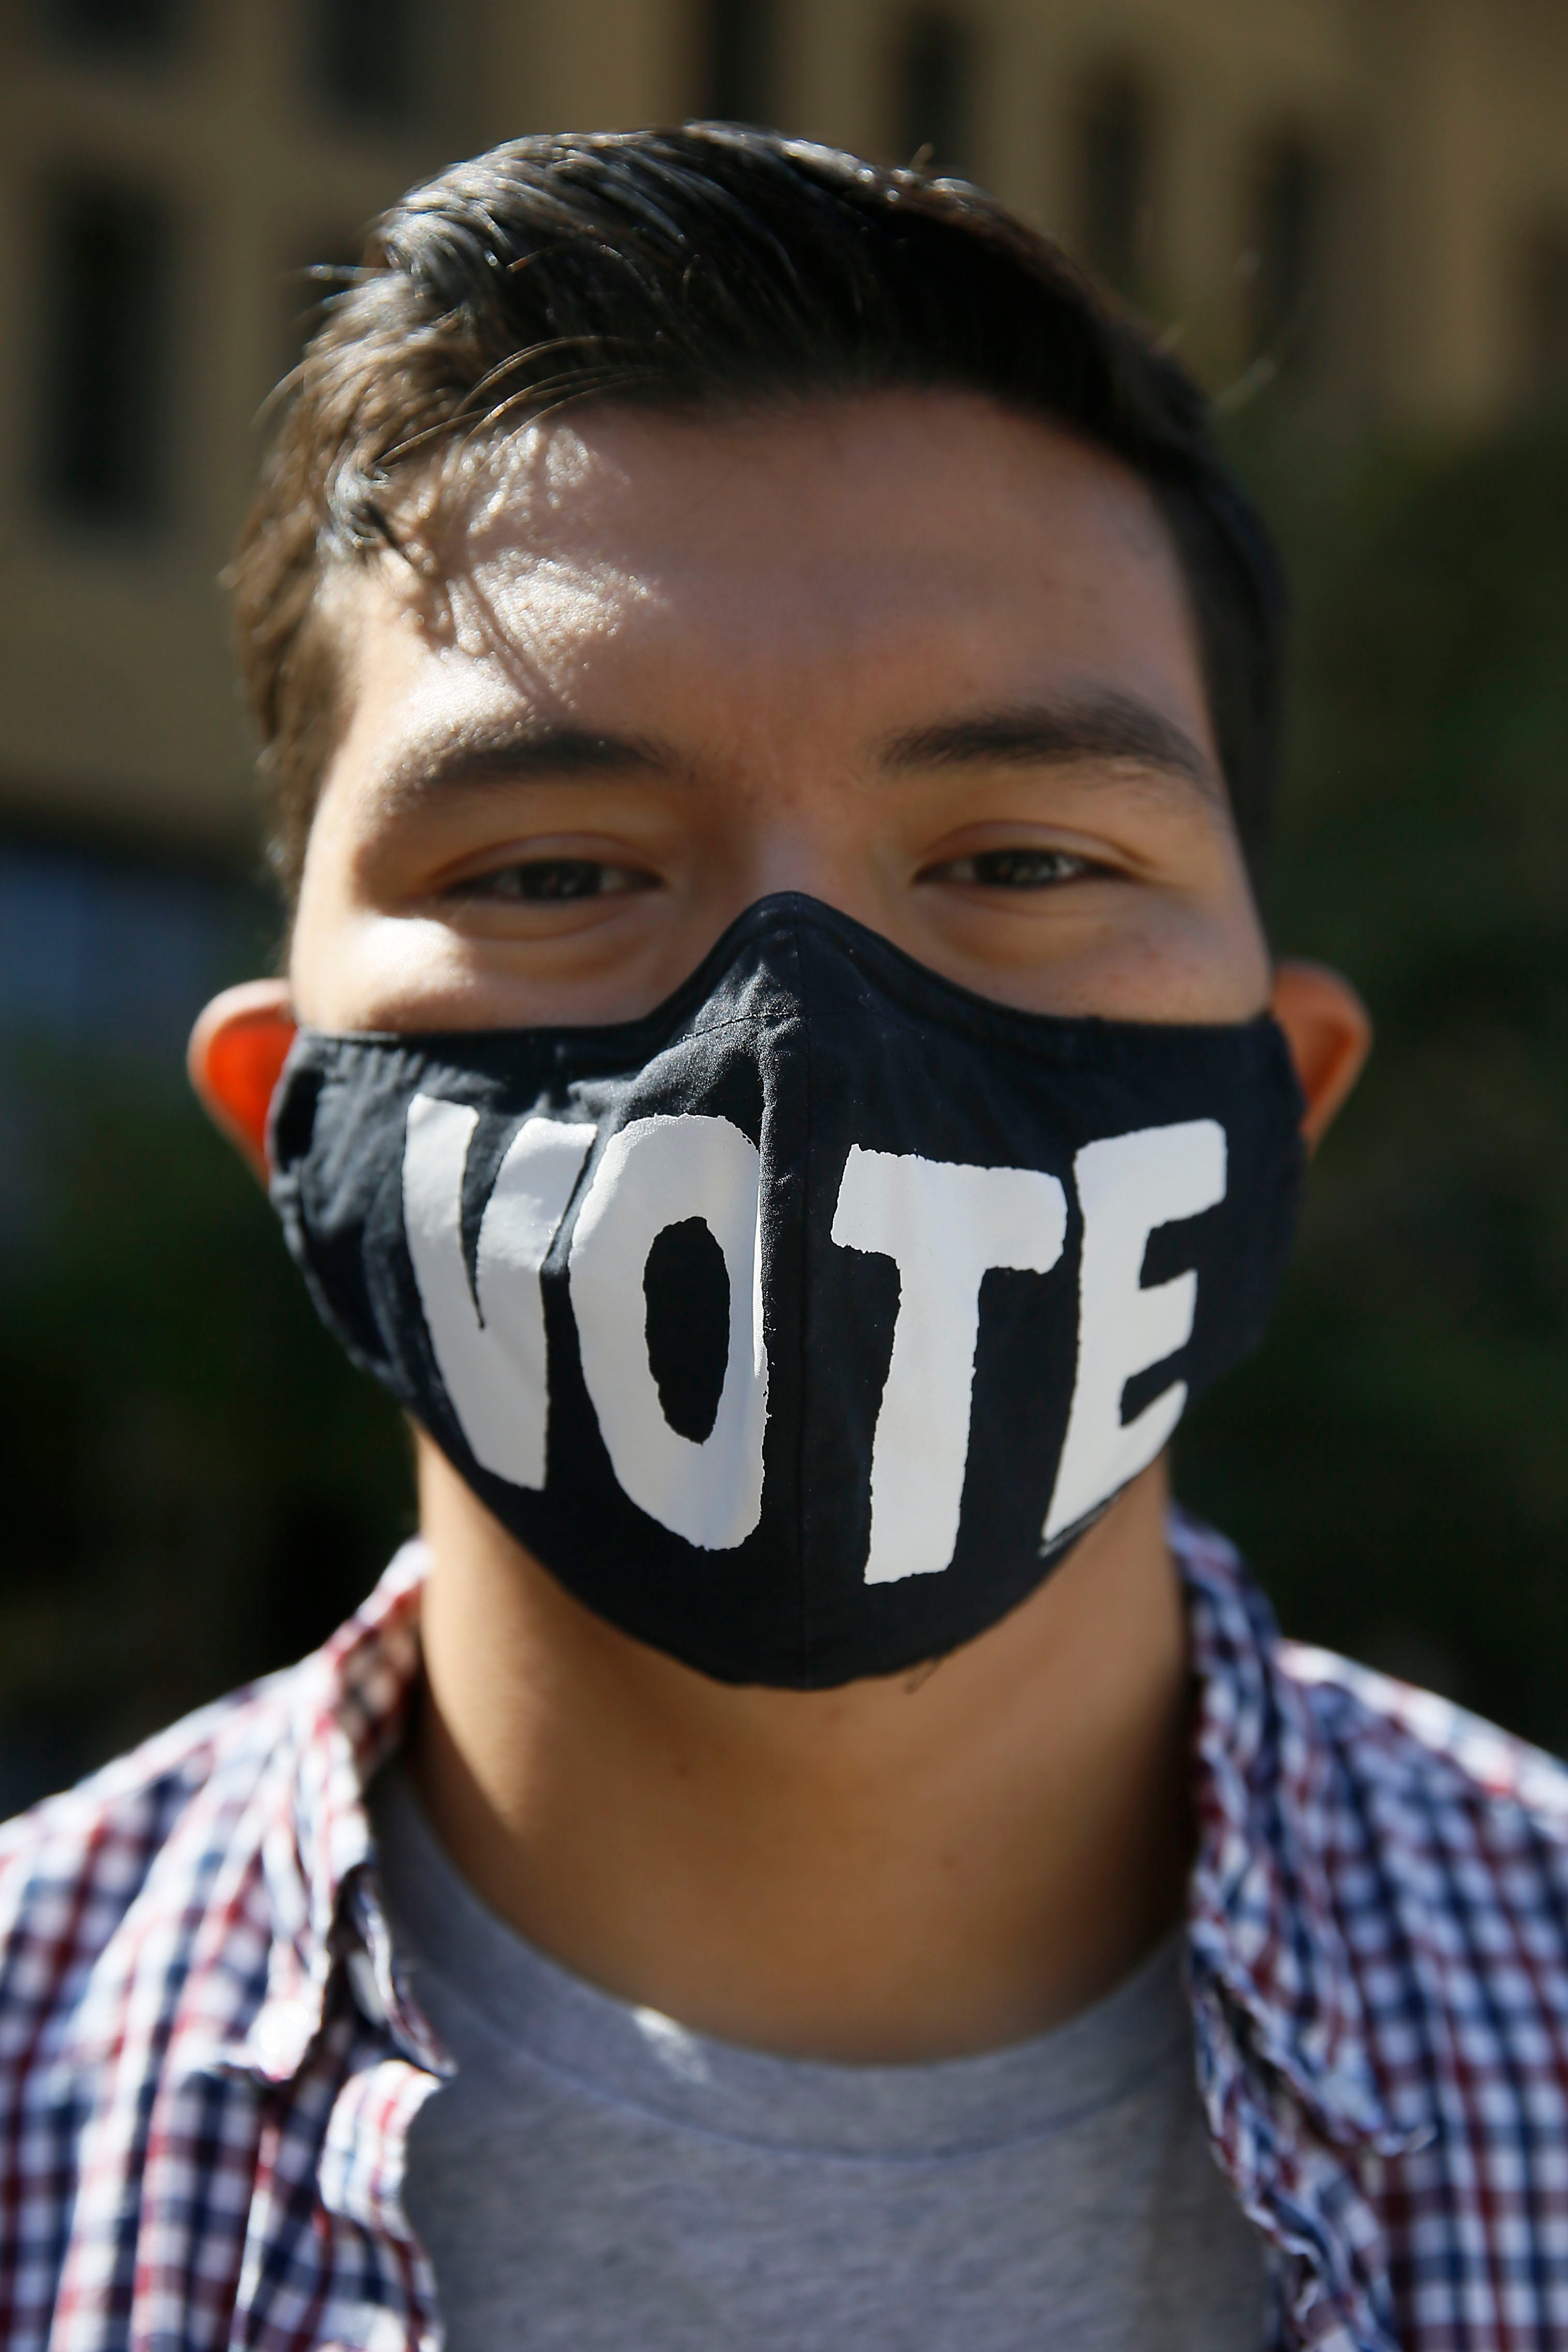 Student wears a mask that reads